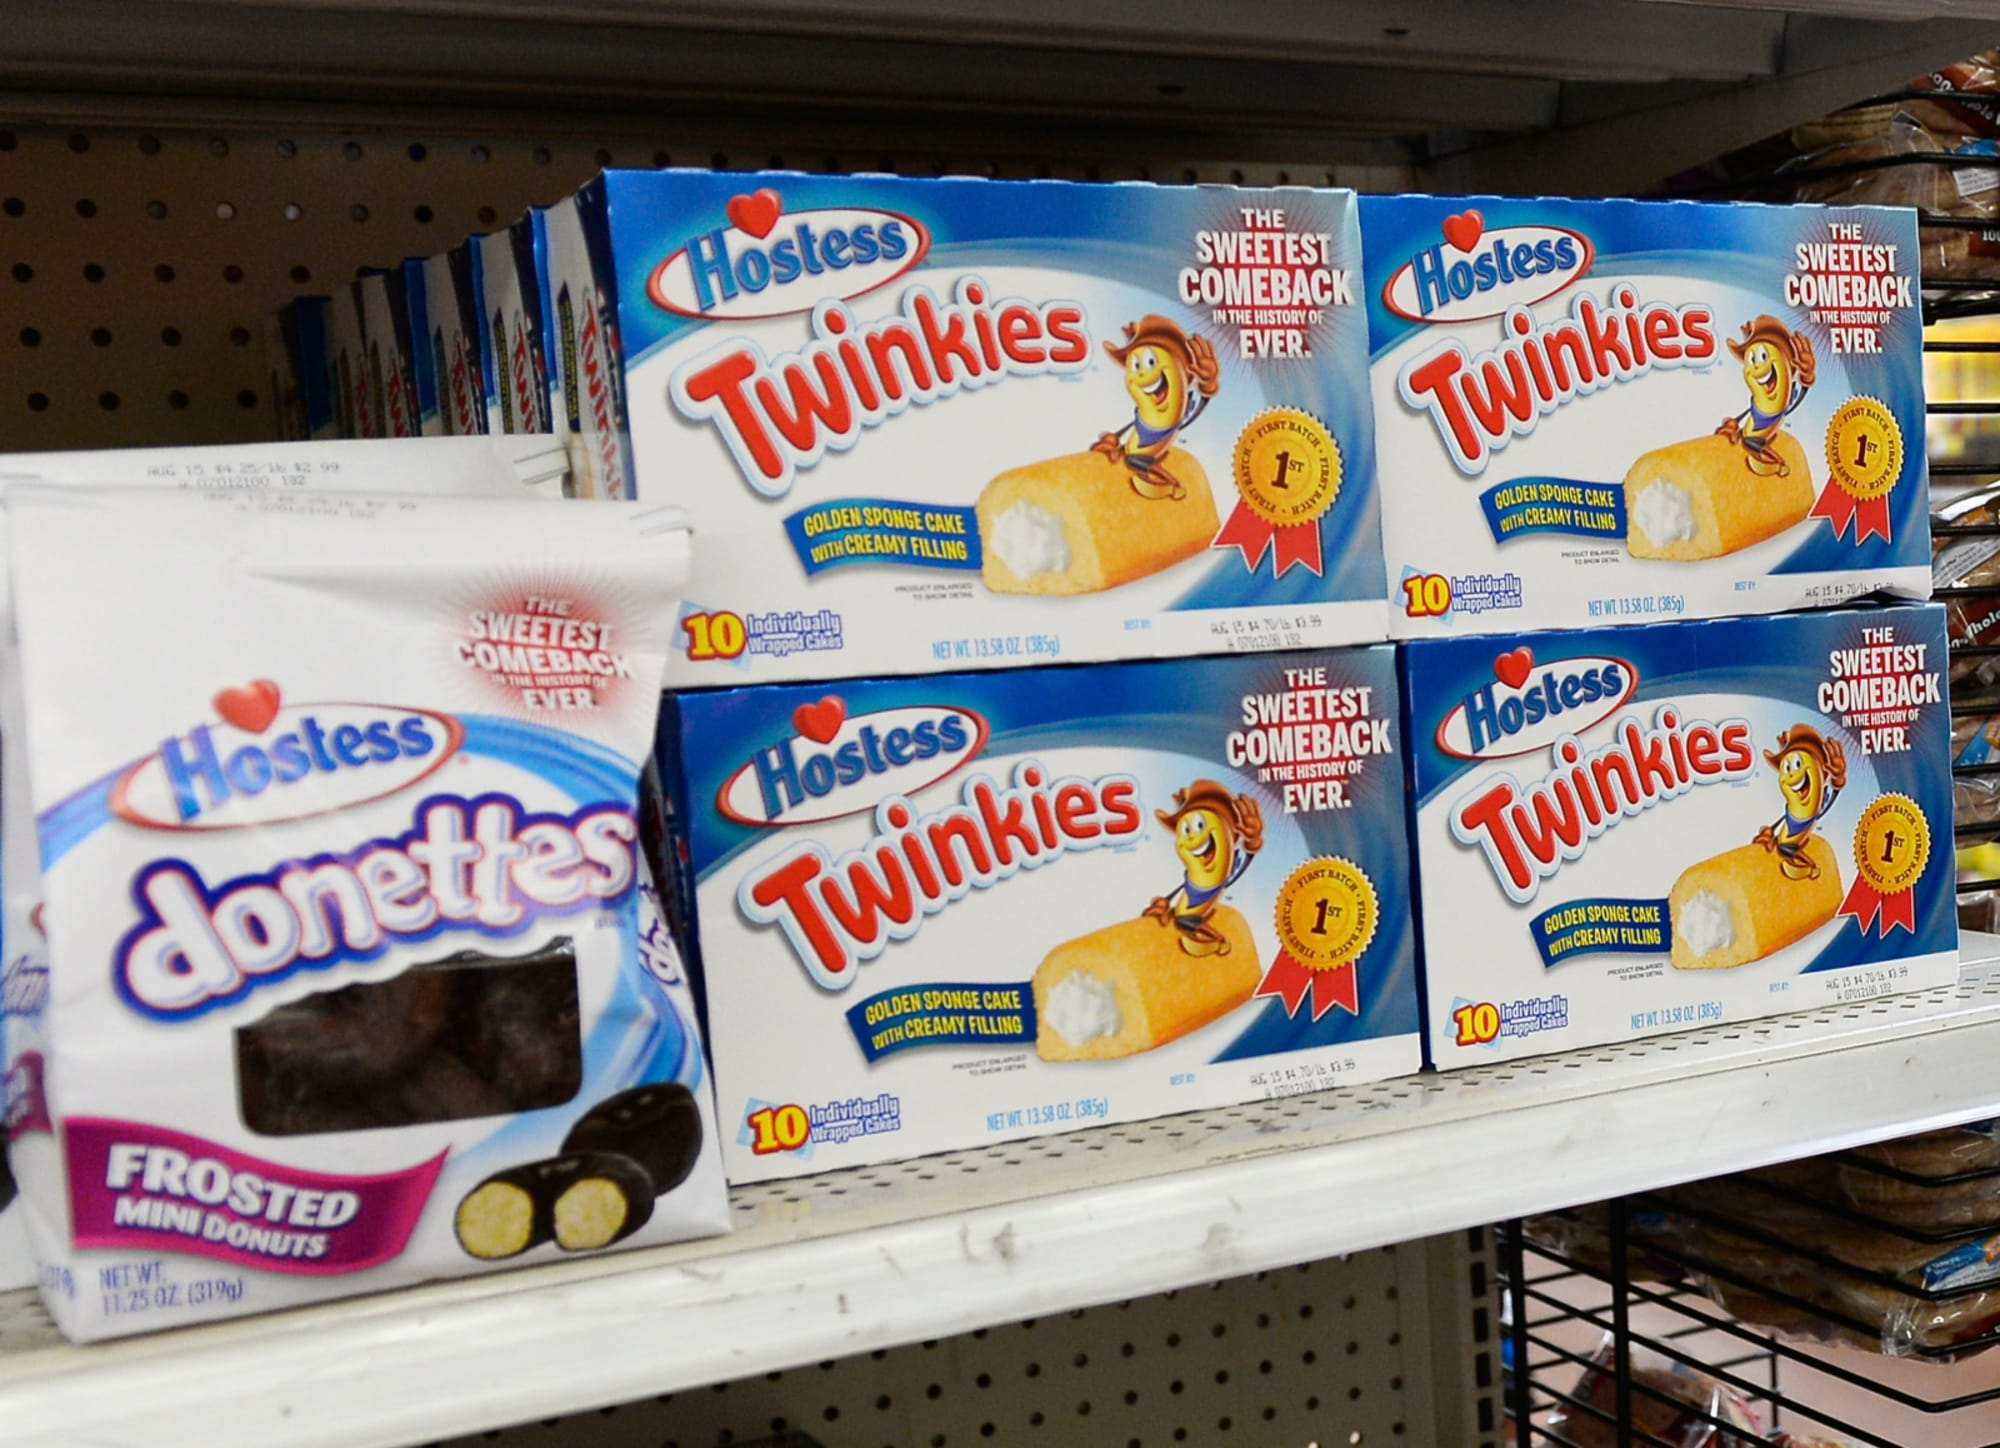 New Mixed Berry Twinkies have arrived for your snacking pleasure